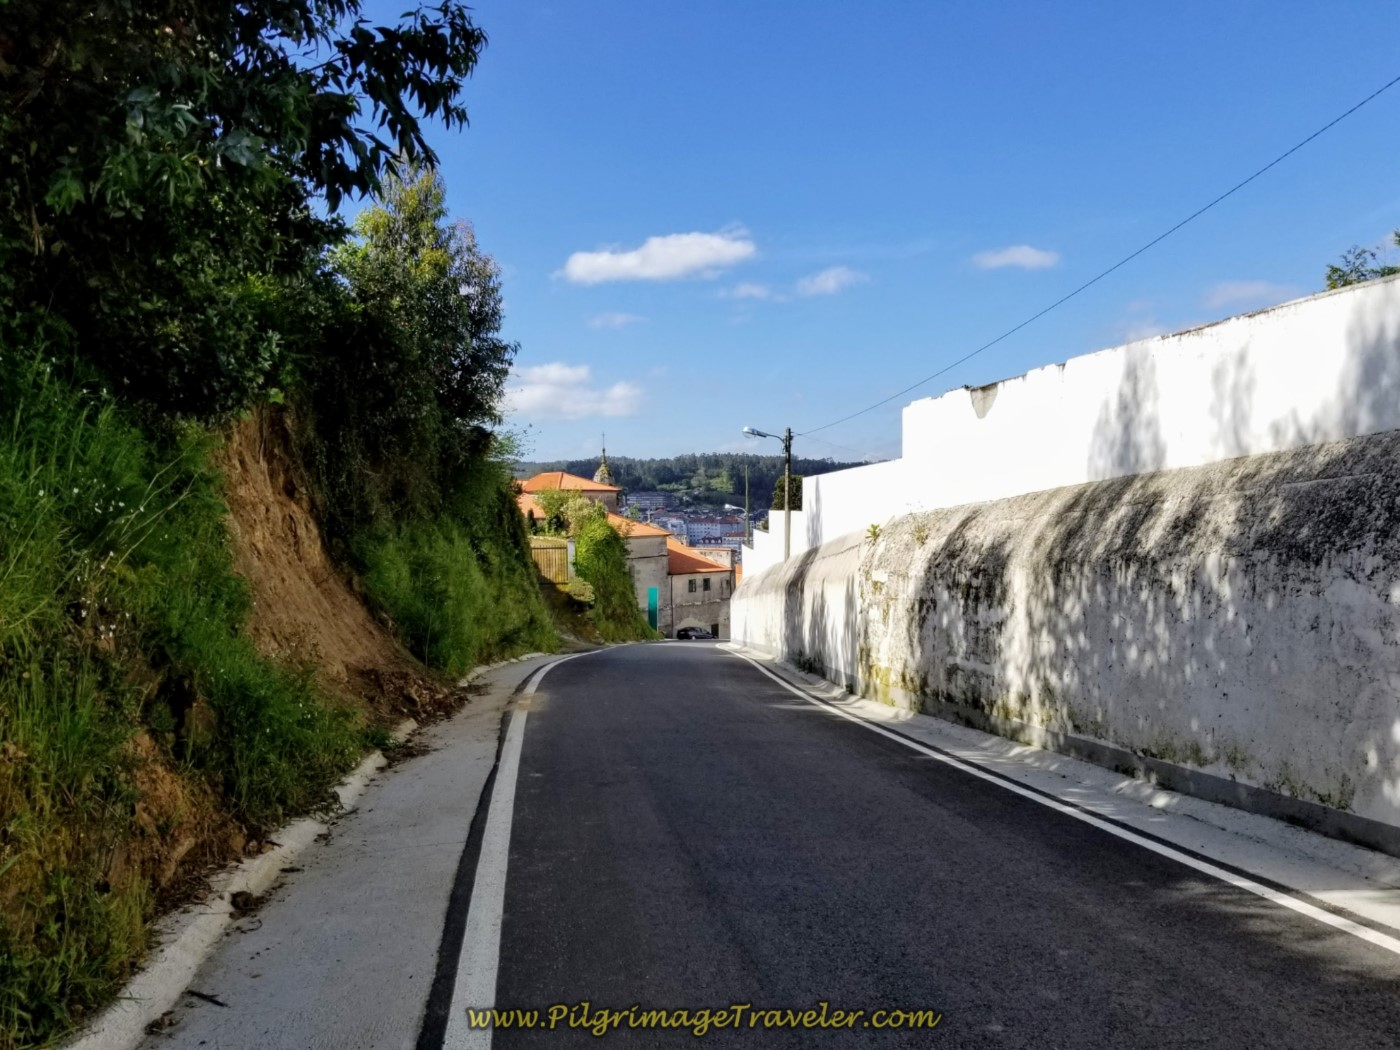 Pass the Cemetery of the Santuario de Nosa Señora do Camiño in Betanzos on day four of the English Way